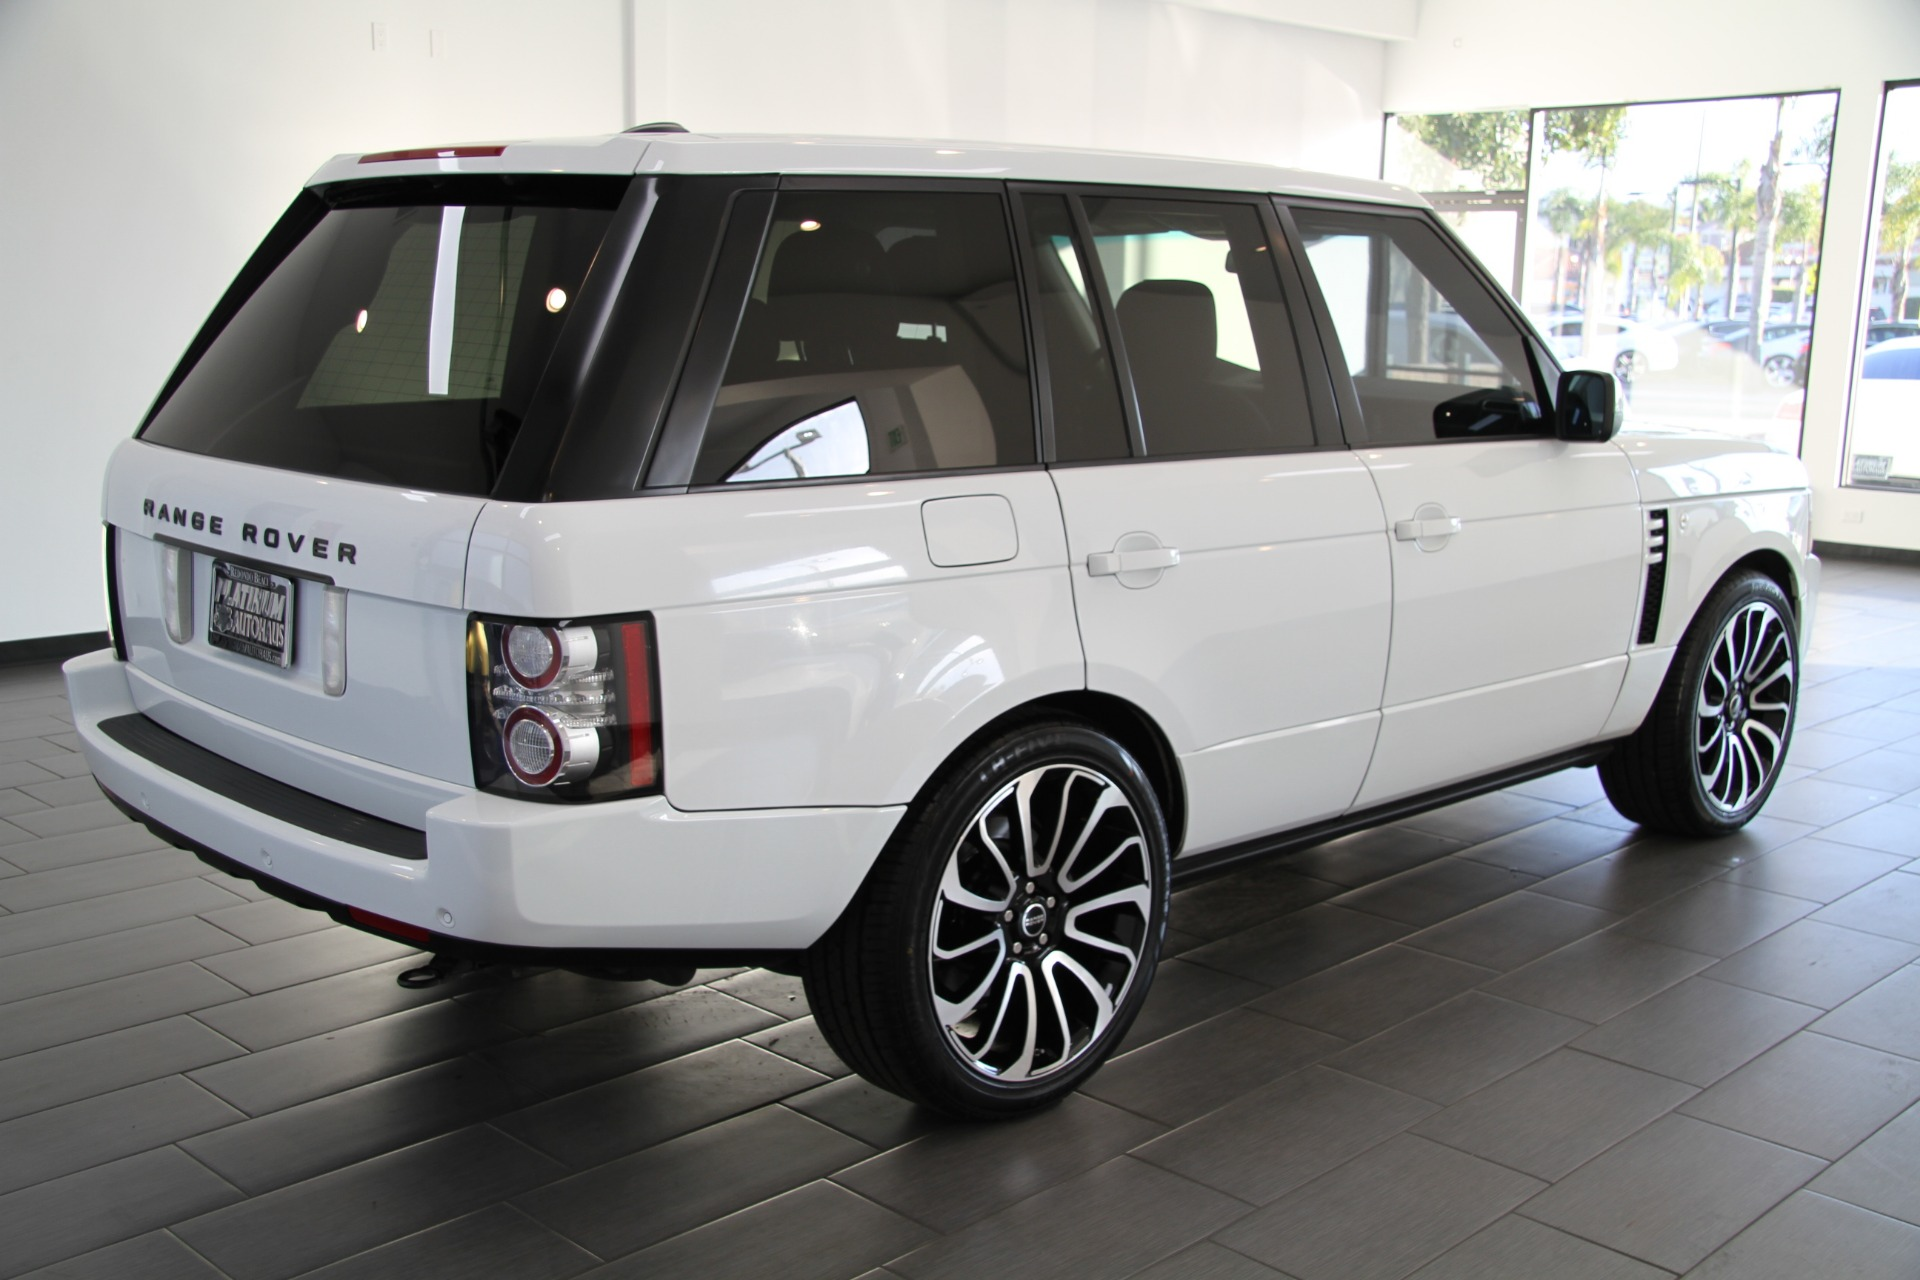 Land Rover For Sale Near Me >> 2012 Land Rover Range Rover HSE Stock # 5810A for sale ...